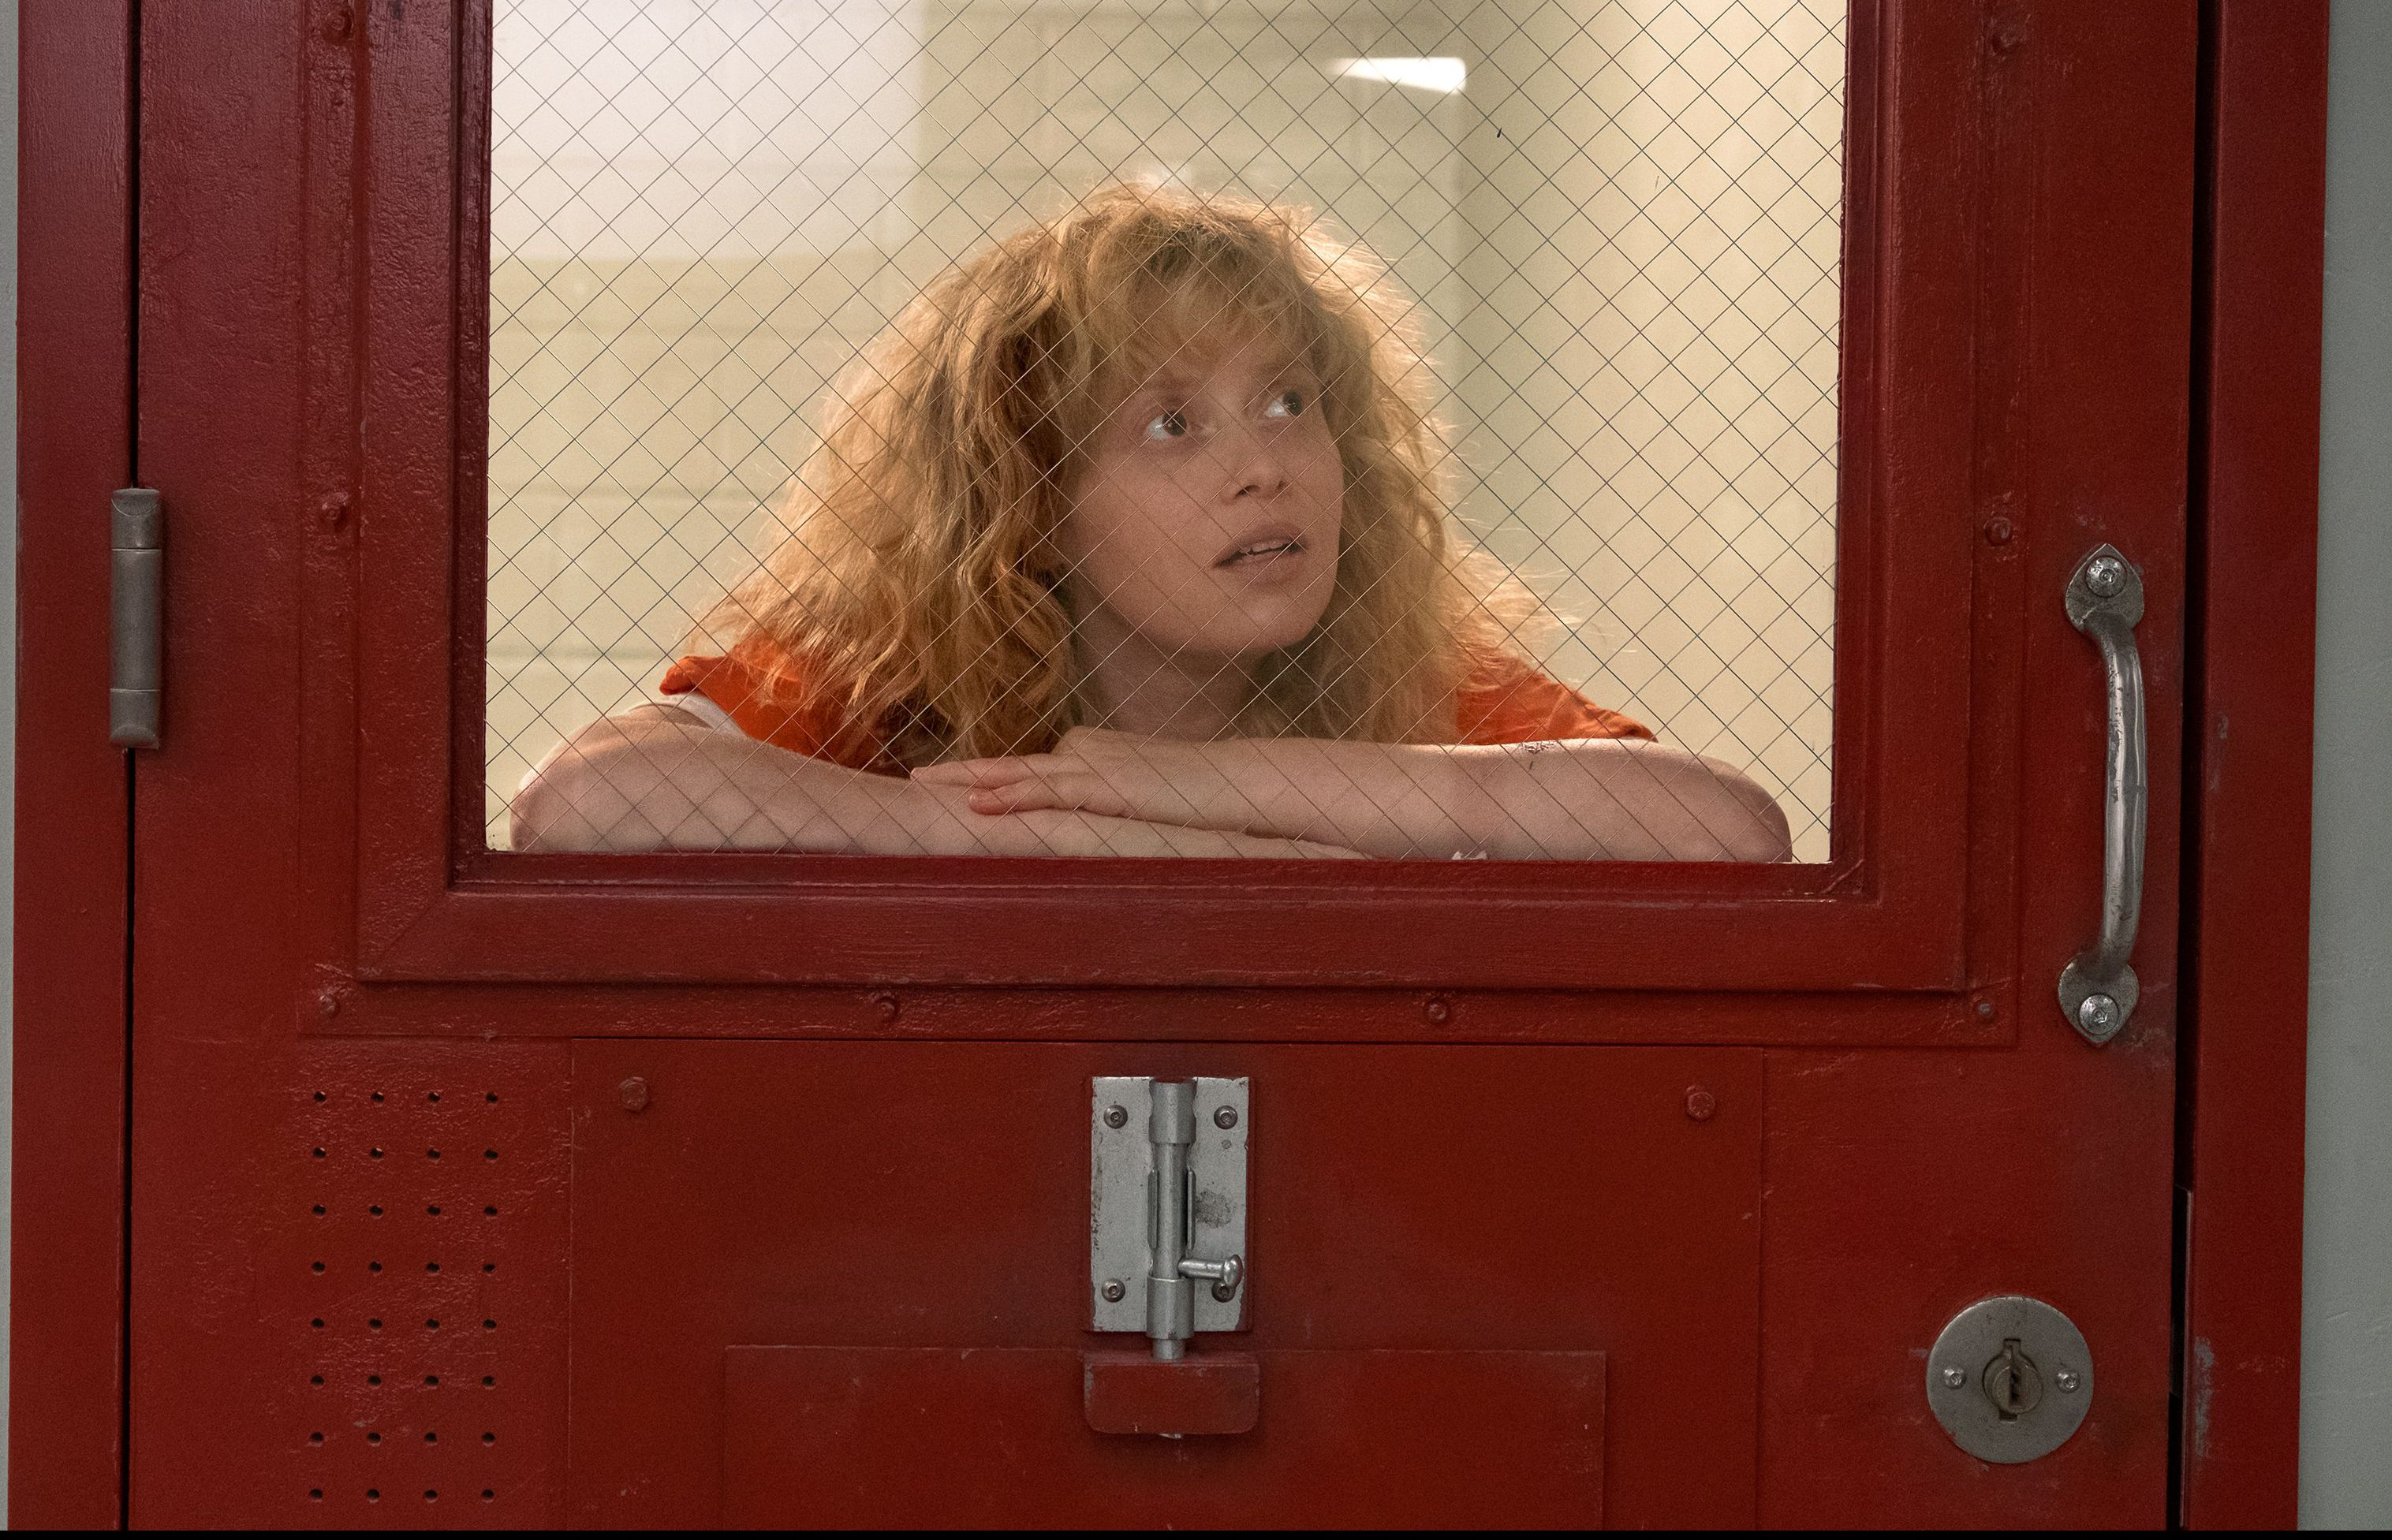 'I wanted to be Kate Moss': Orange is the New Black's Natasha Lyonne on how she learned to rebel against being 'perfect wallflower fantasy'